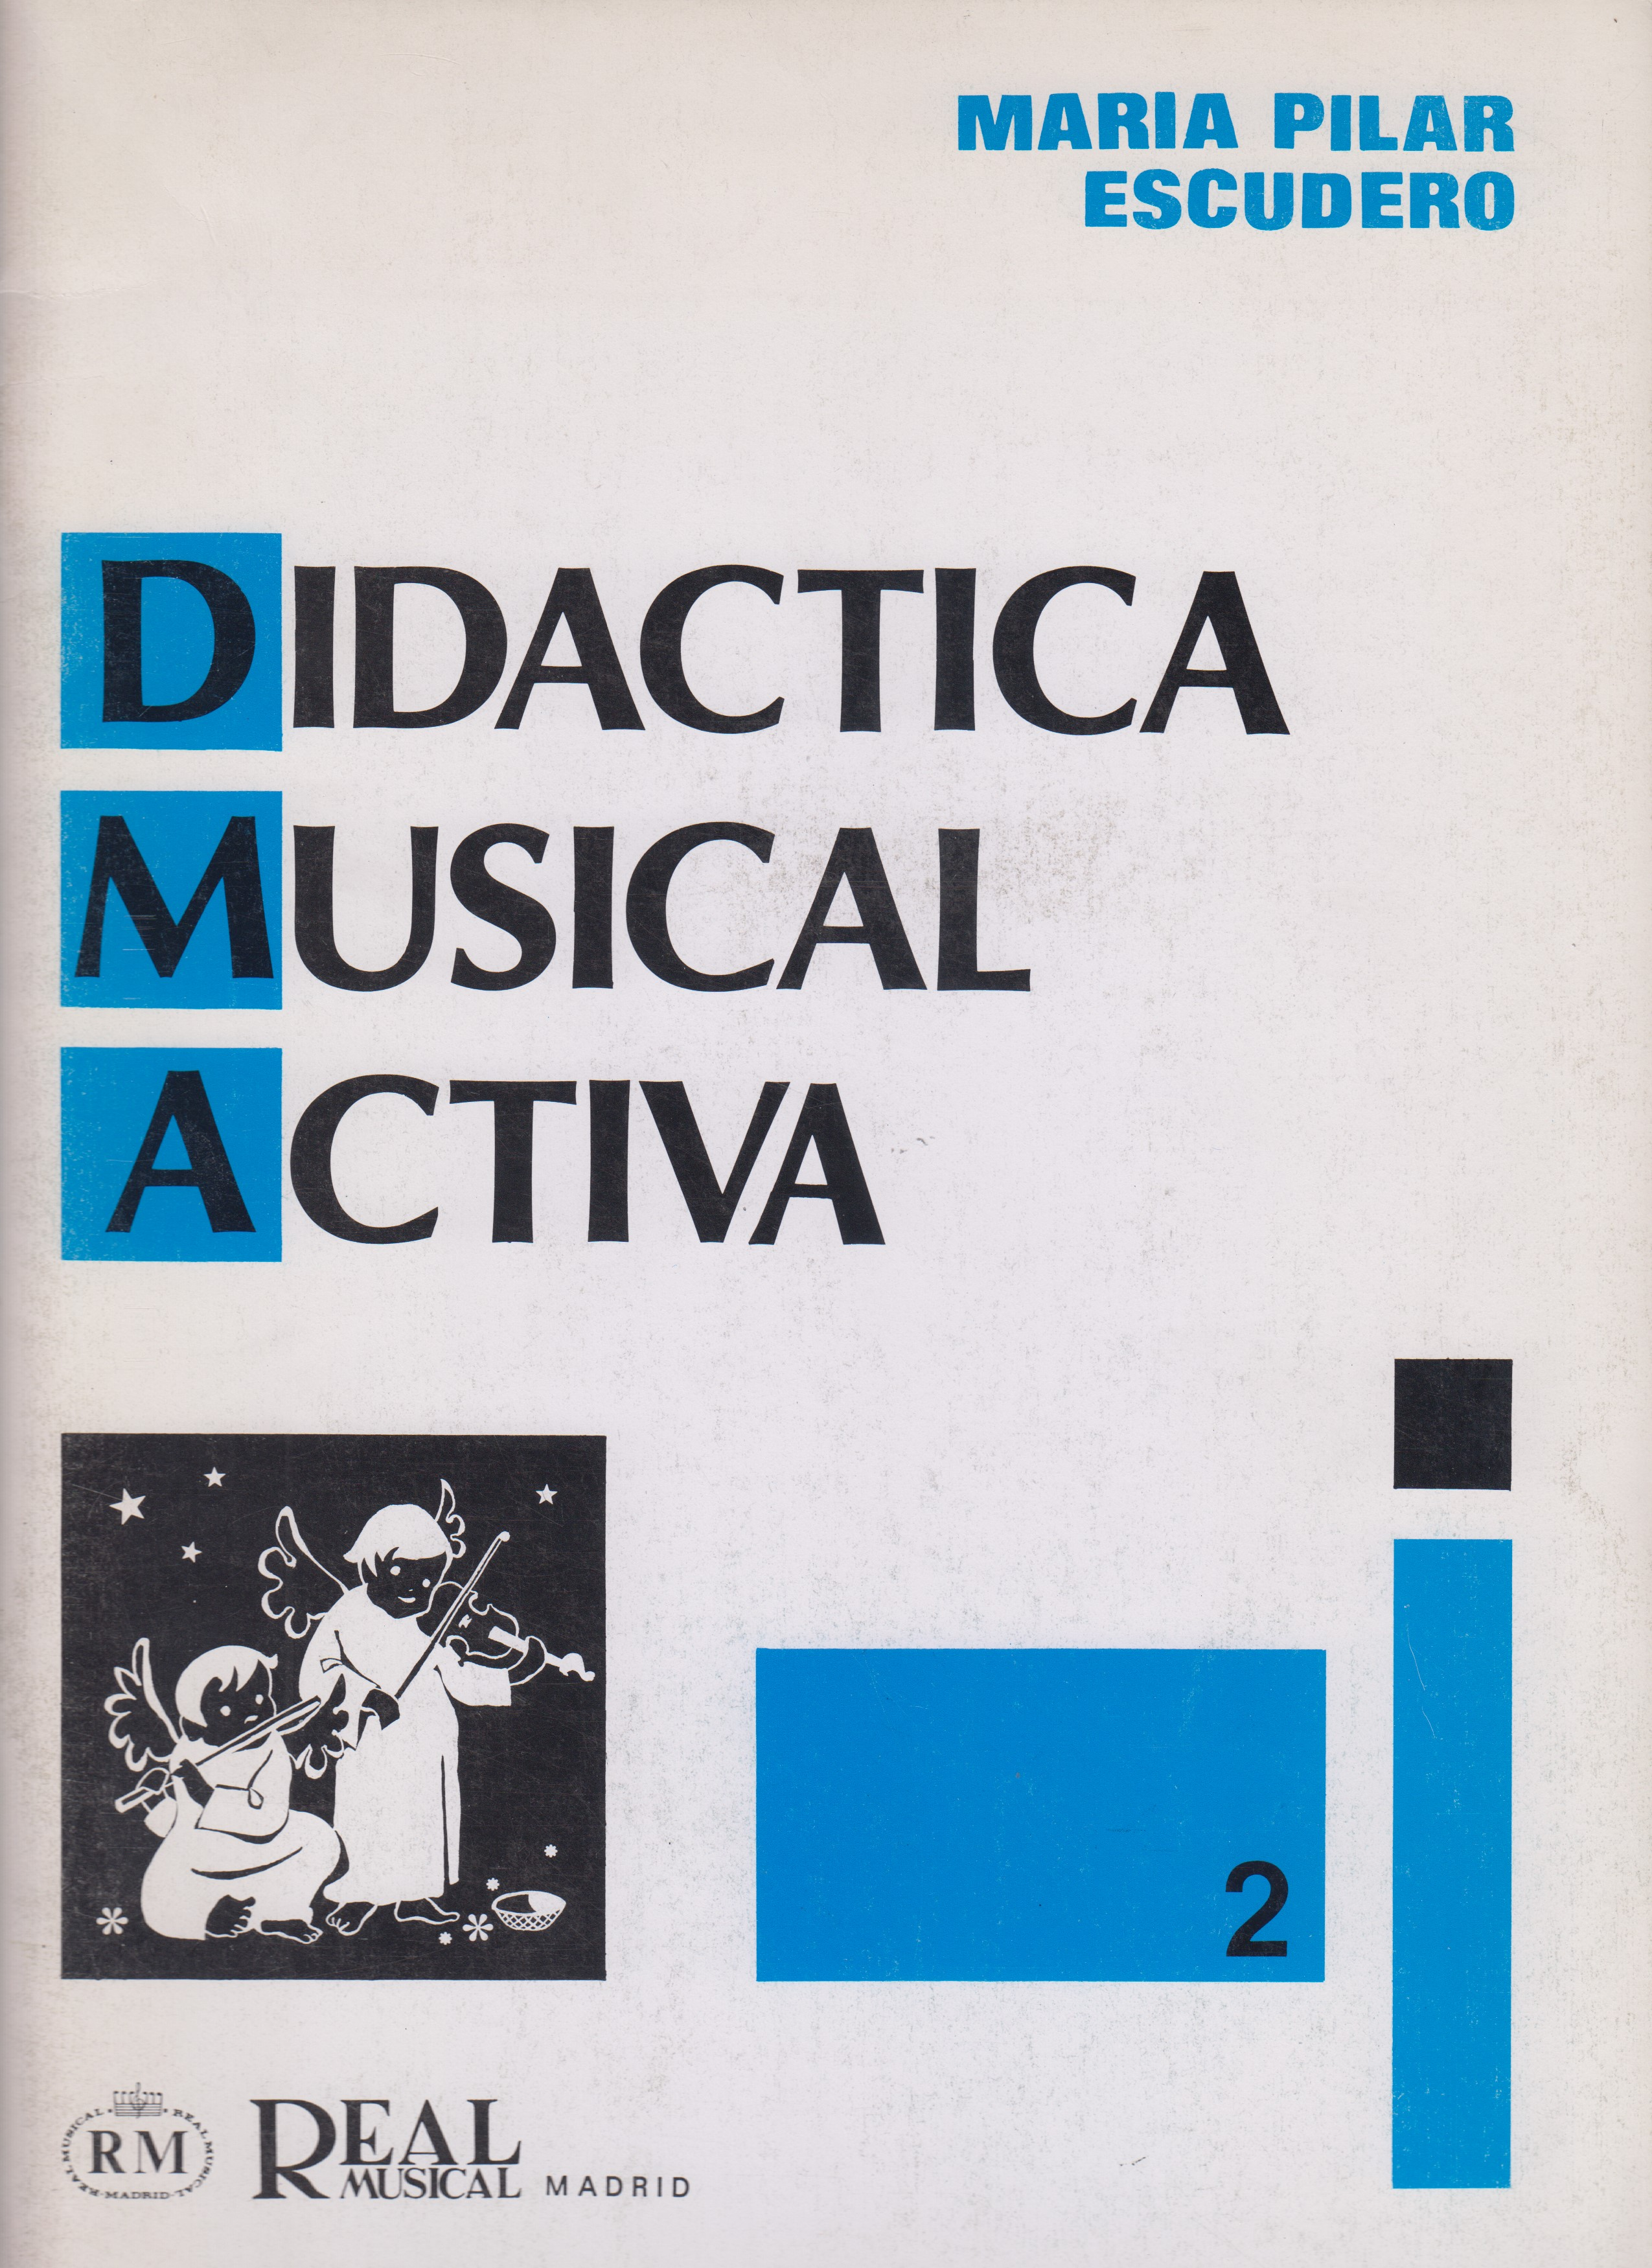 Didactica Musical Activa Nº2